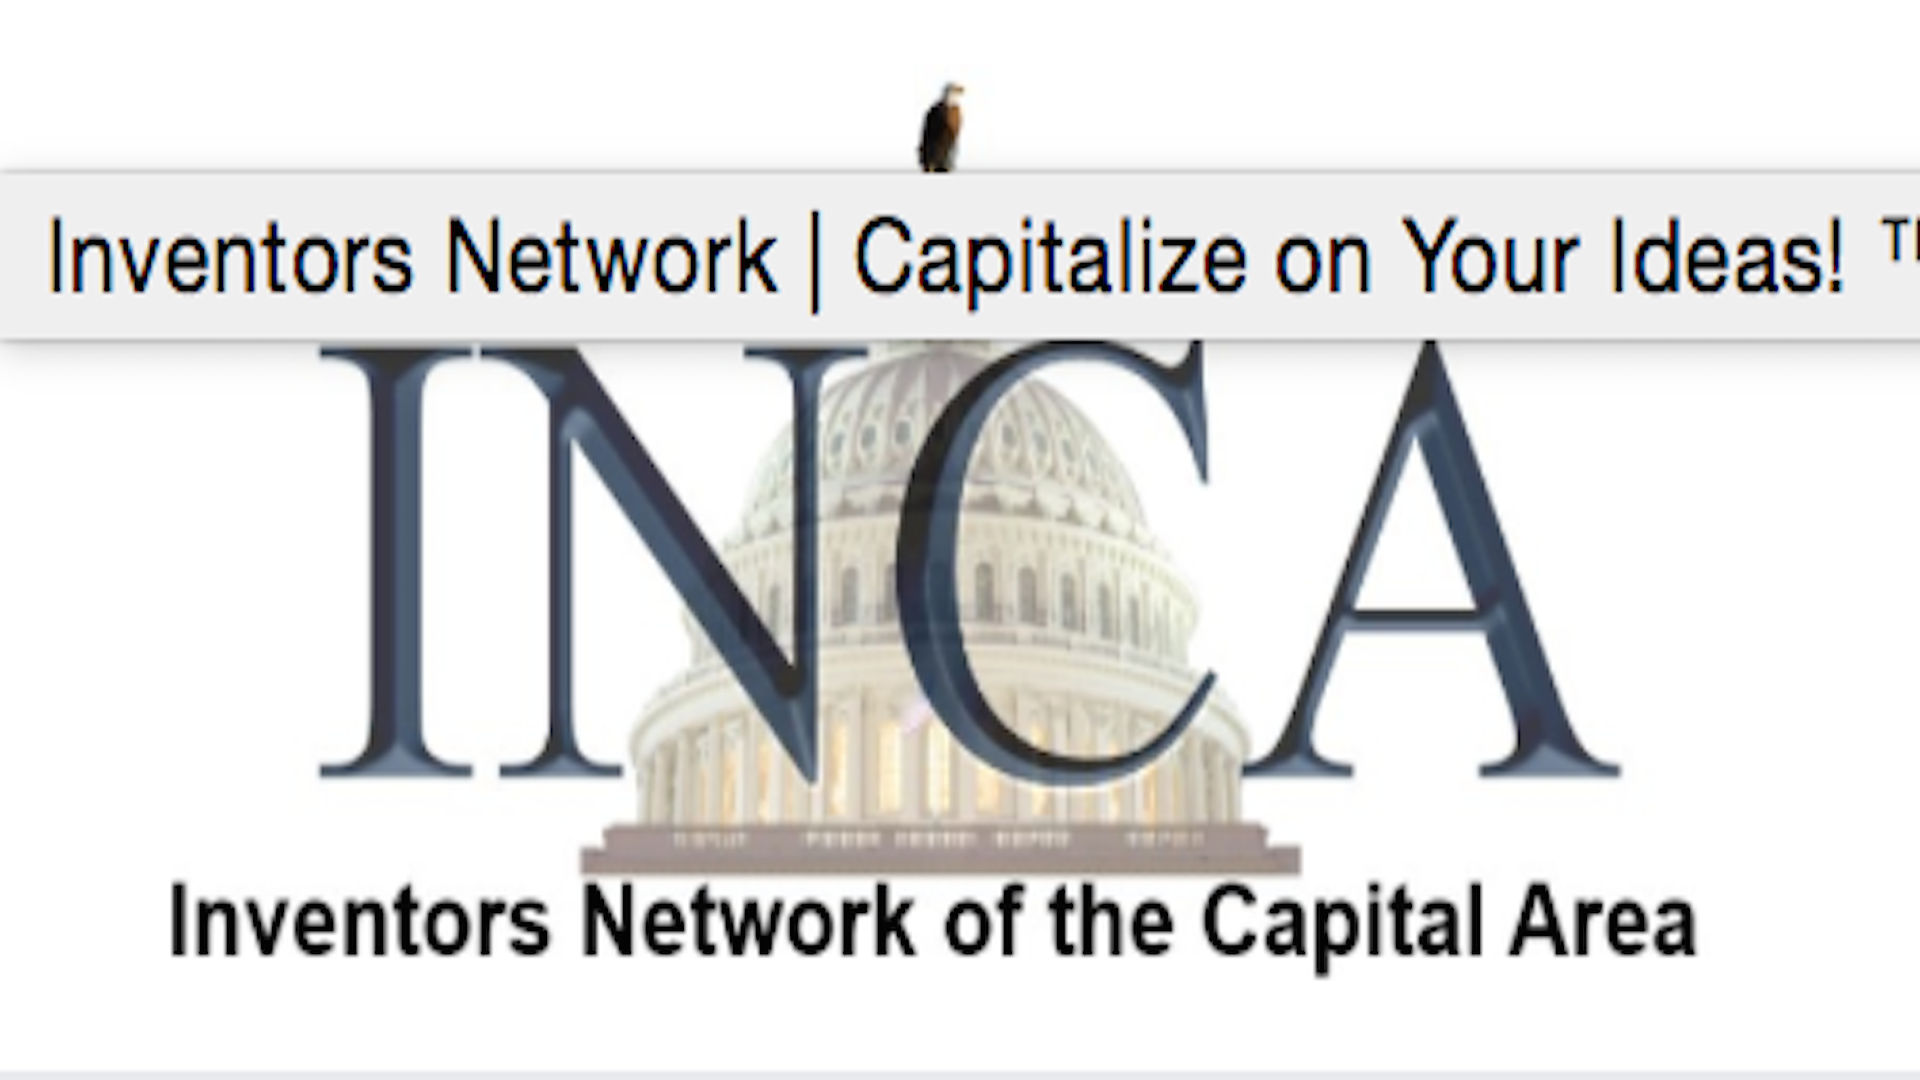 Carrie Jeske at The Inventors Network of the Capital Area (INCA)